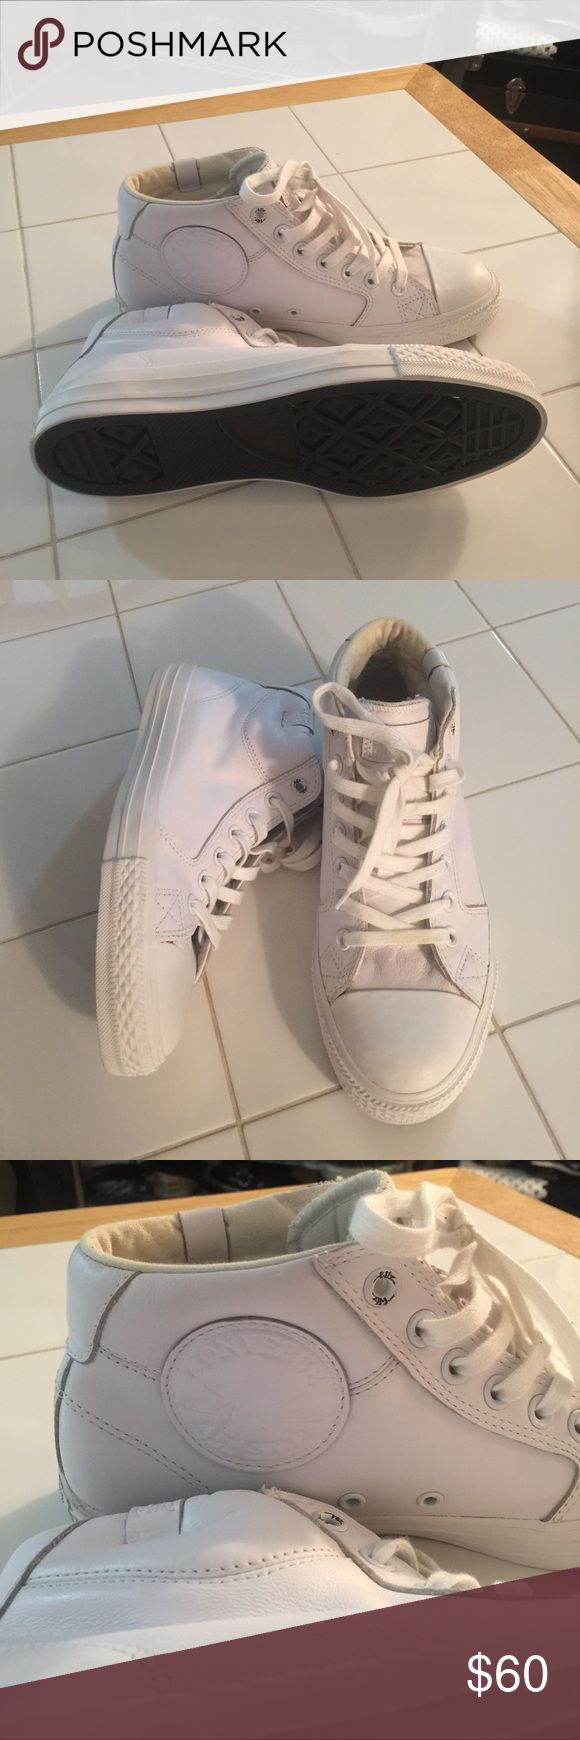 Wiz Khalifa Converse Shoes All white Wiz Khalifa edition converse. Size 8 in men therefore 9 1/2 in women. Worn once and they are to big for me. Converse Shoes Sneakers